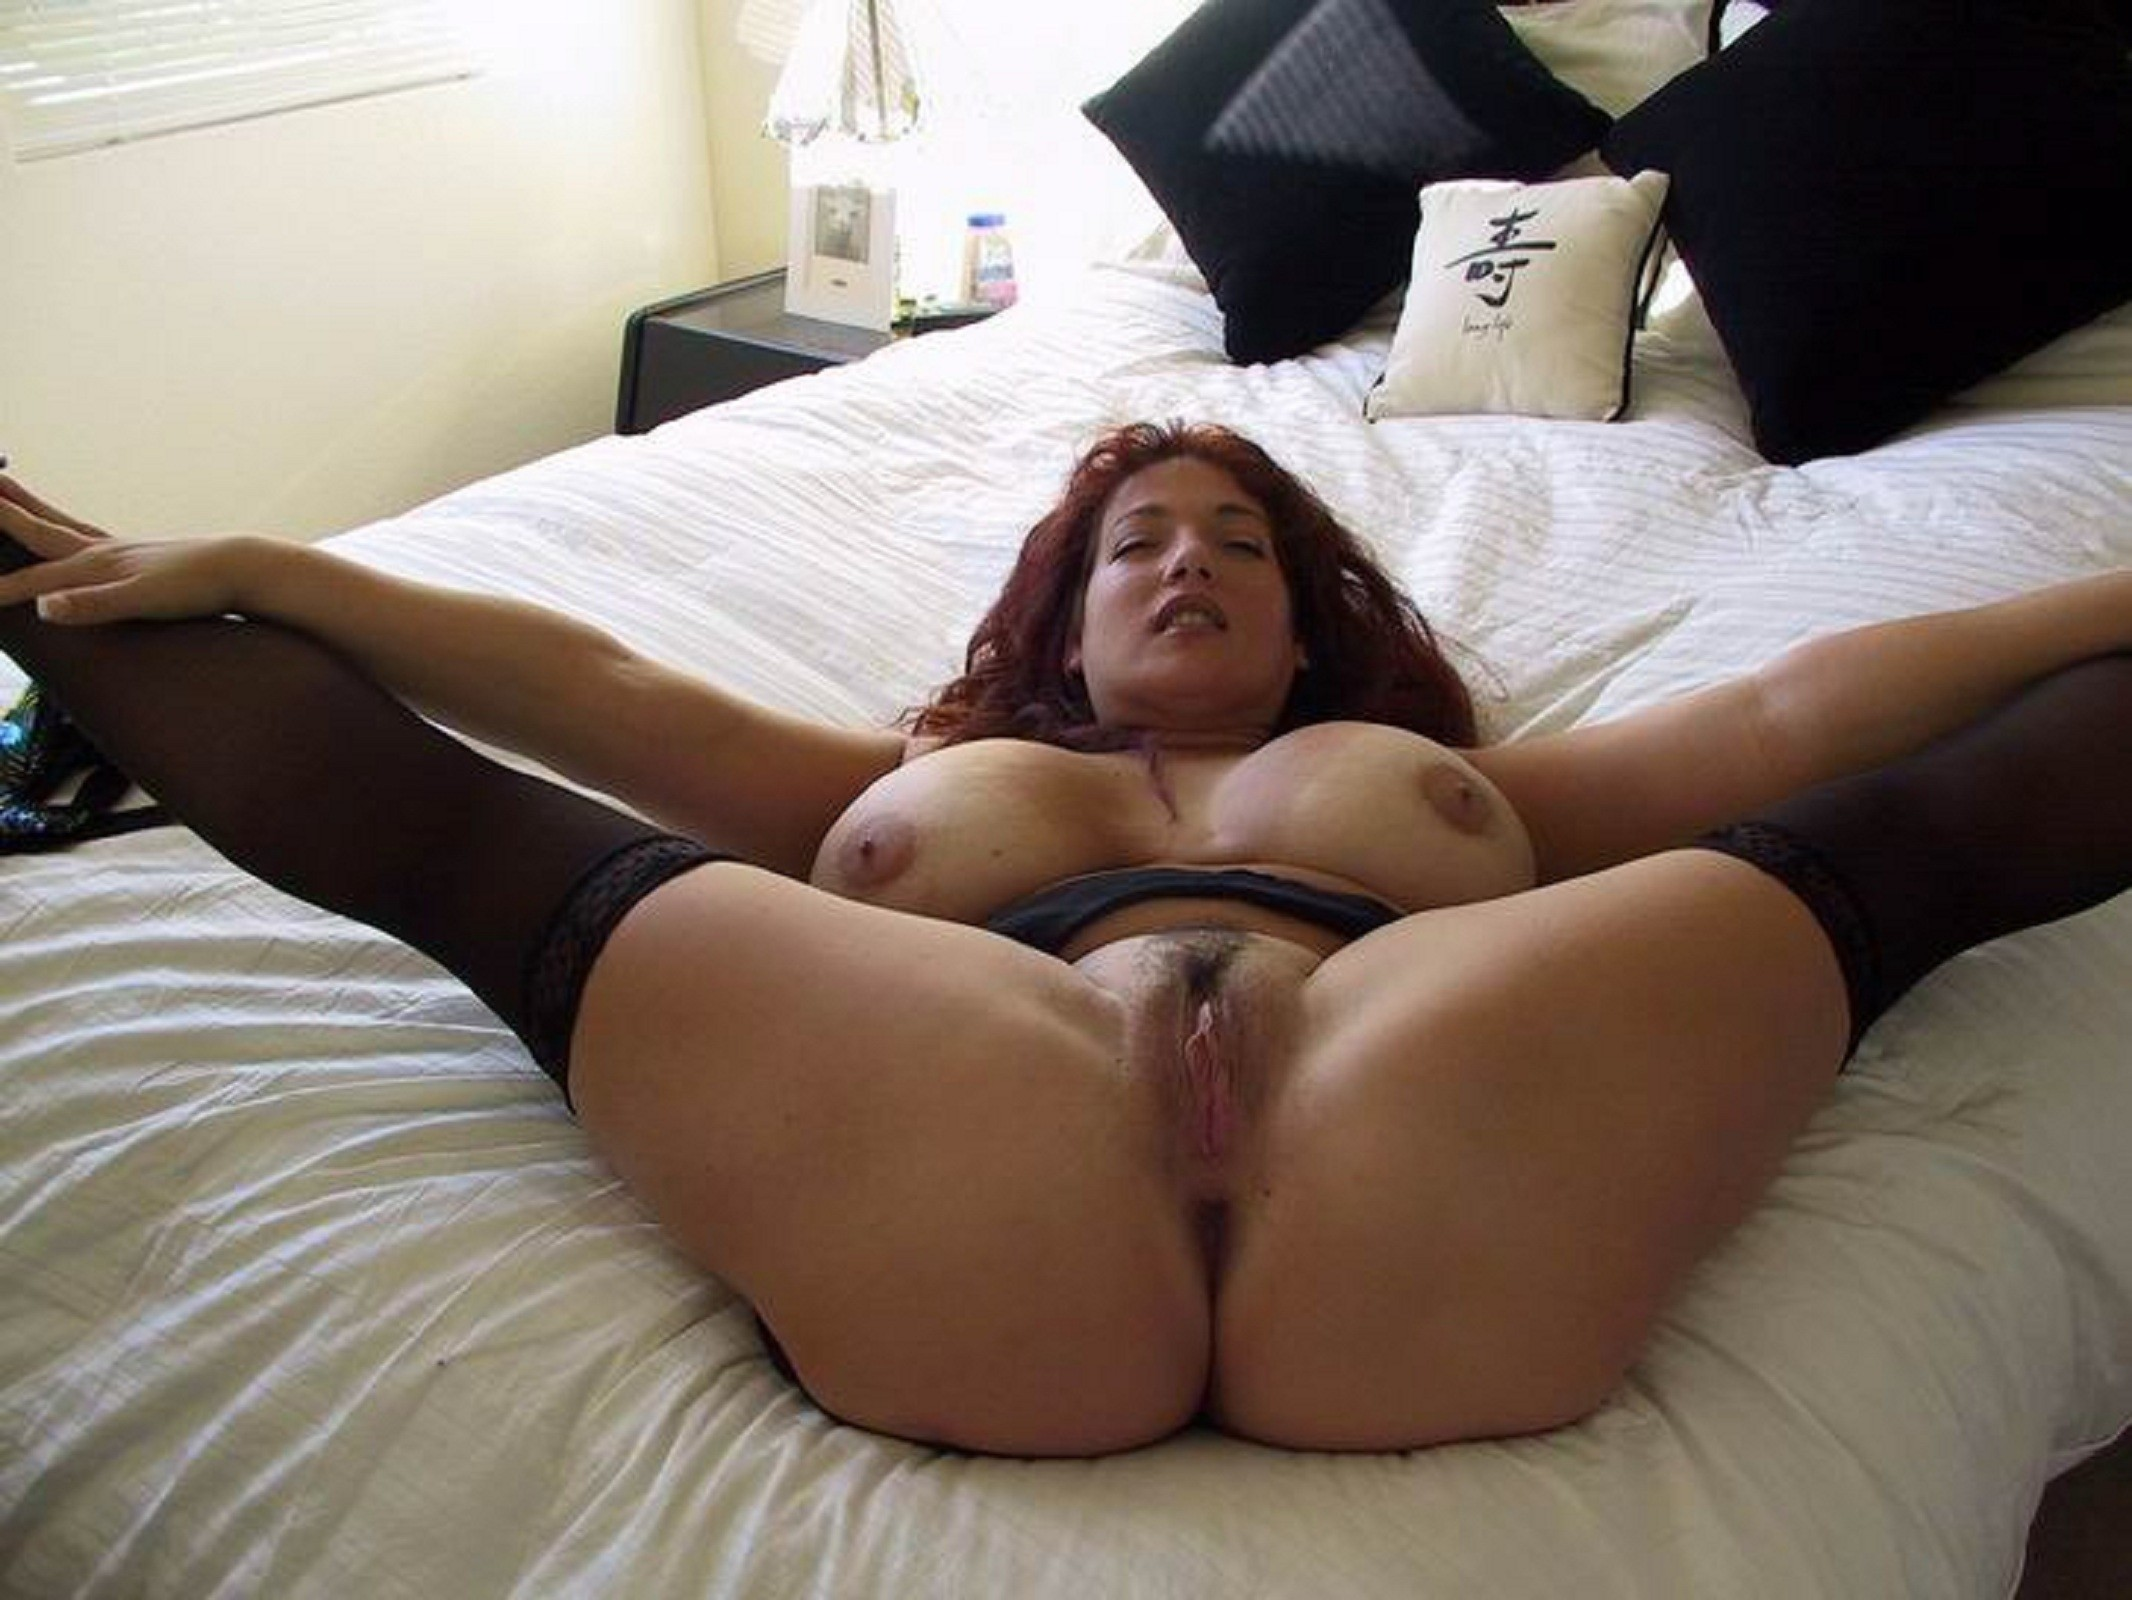 pussy tumblr thighs latina legs thick open